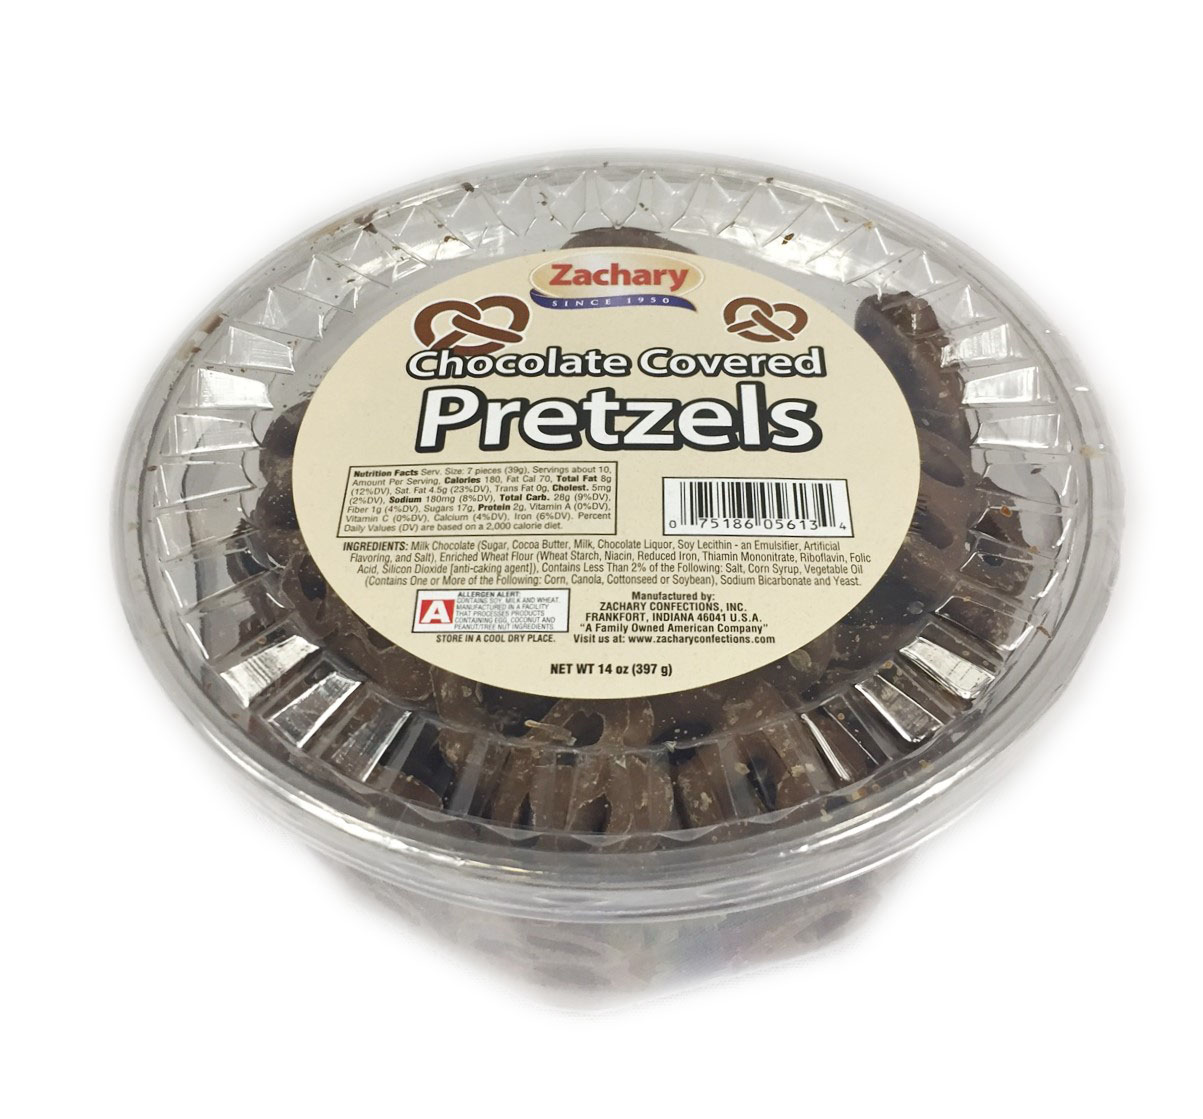 Zachary Chocolate Covered Pretzels Tub - Walmart.com